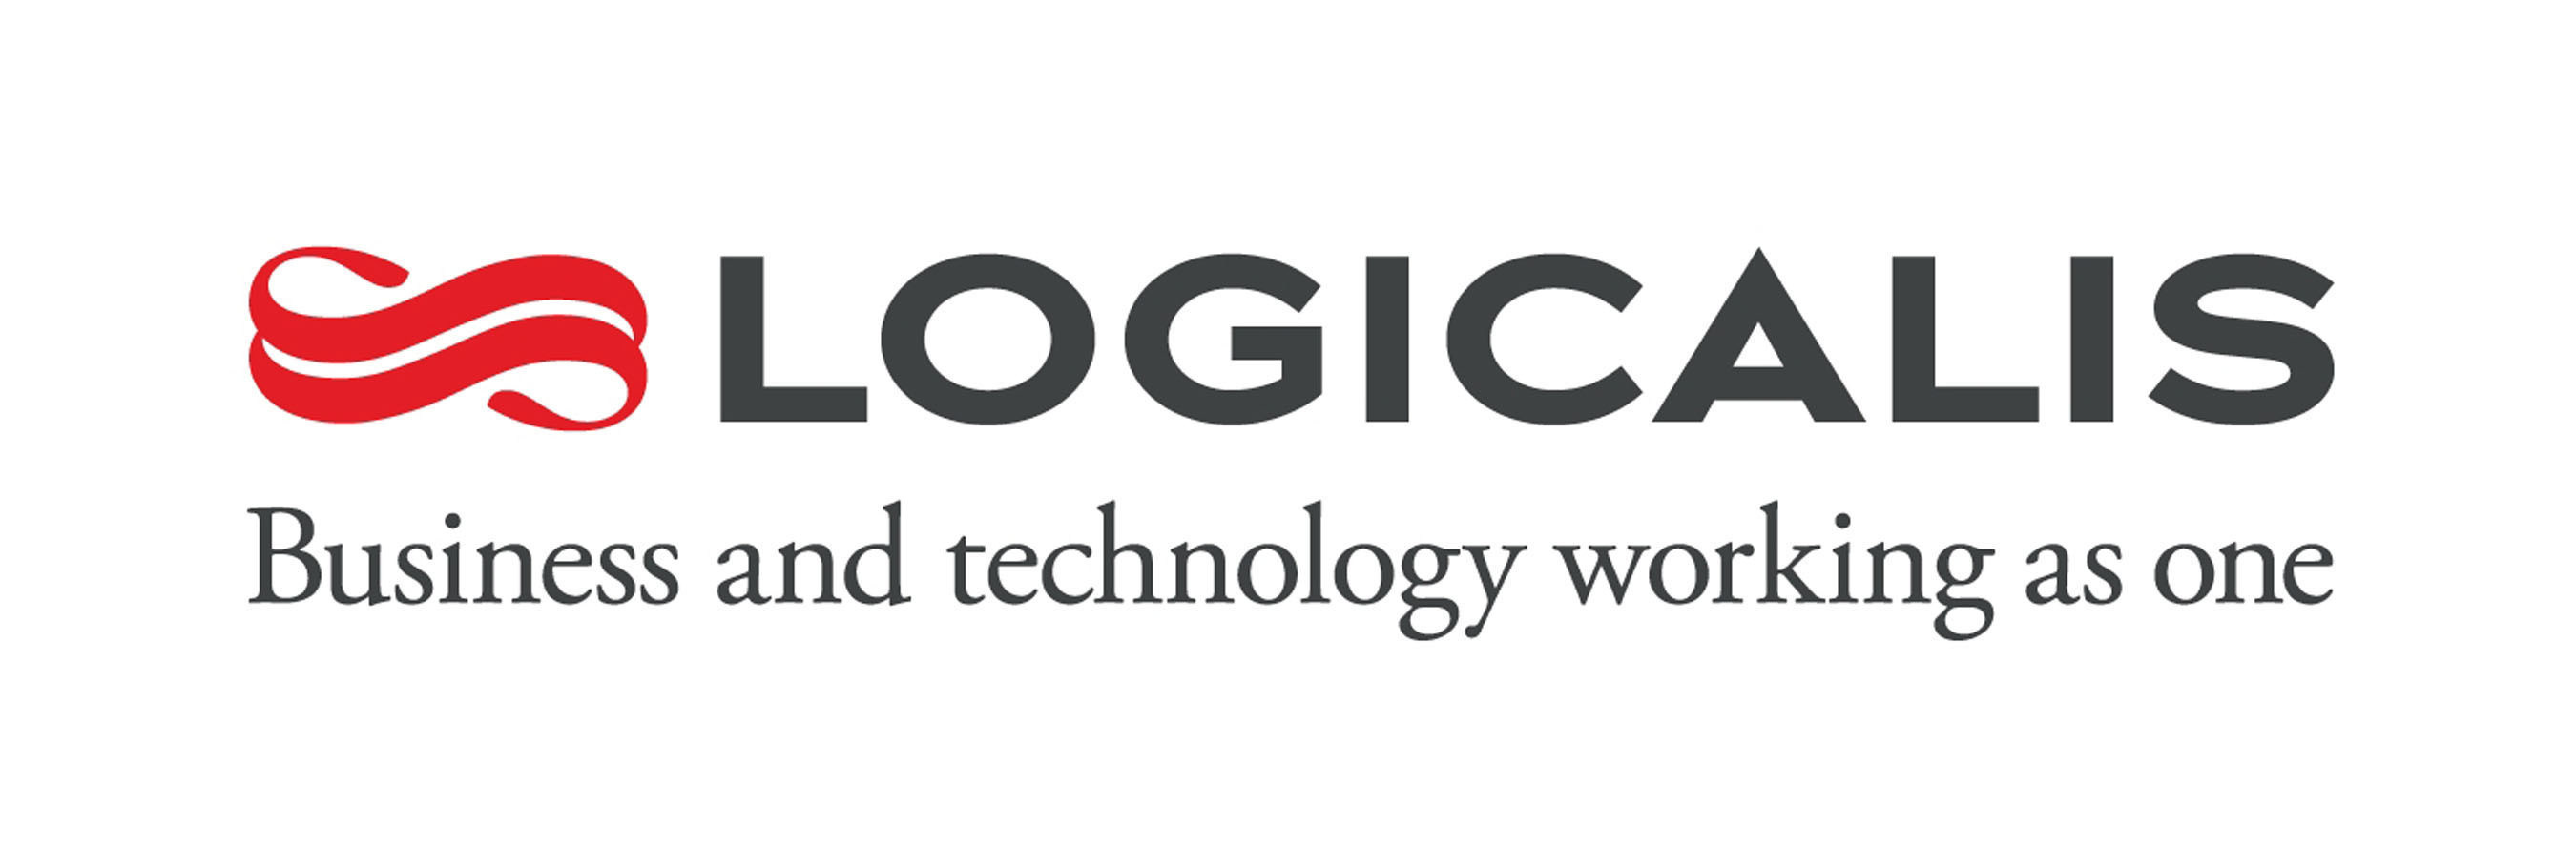 Logicalis US Warns IT Pros: All Clouds are Not Created Equal; Some Cloud Providers are Not Equipped to Protect Enterprise Data from Loss